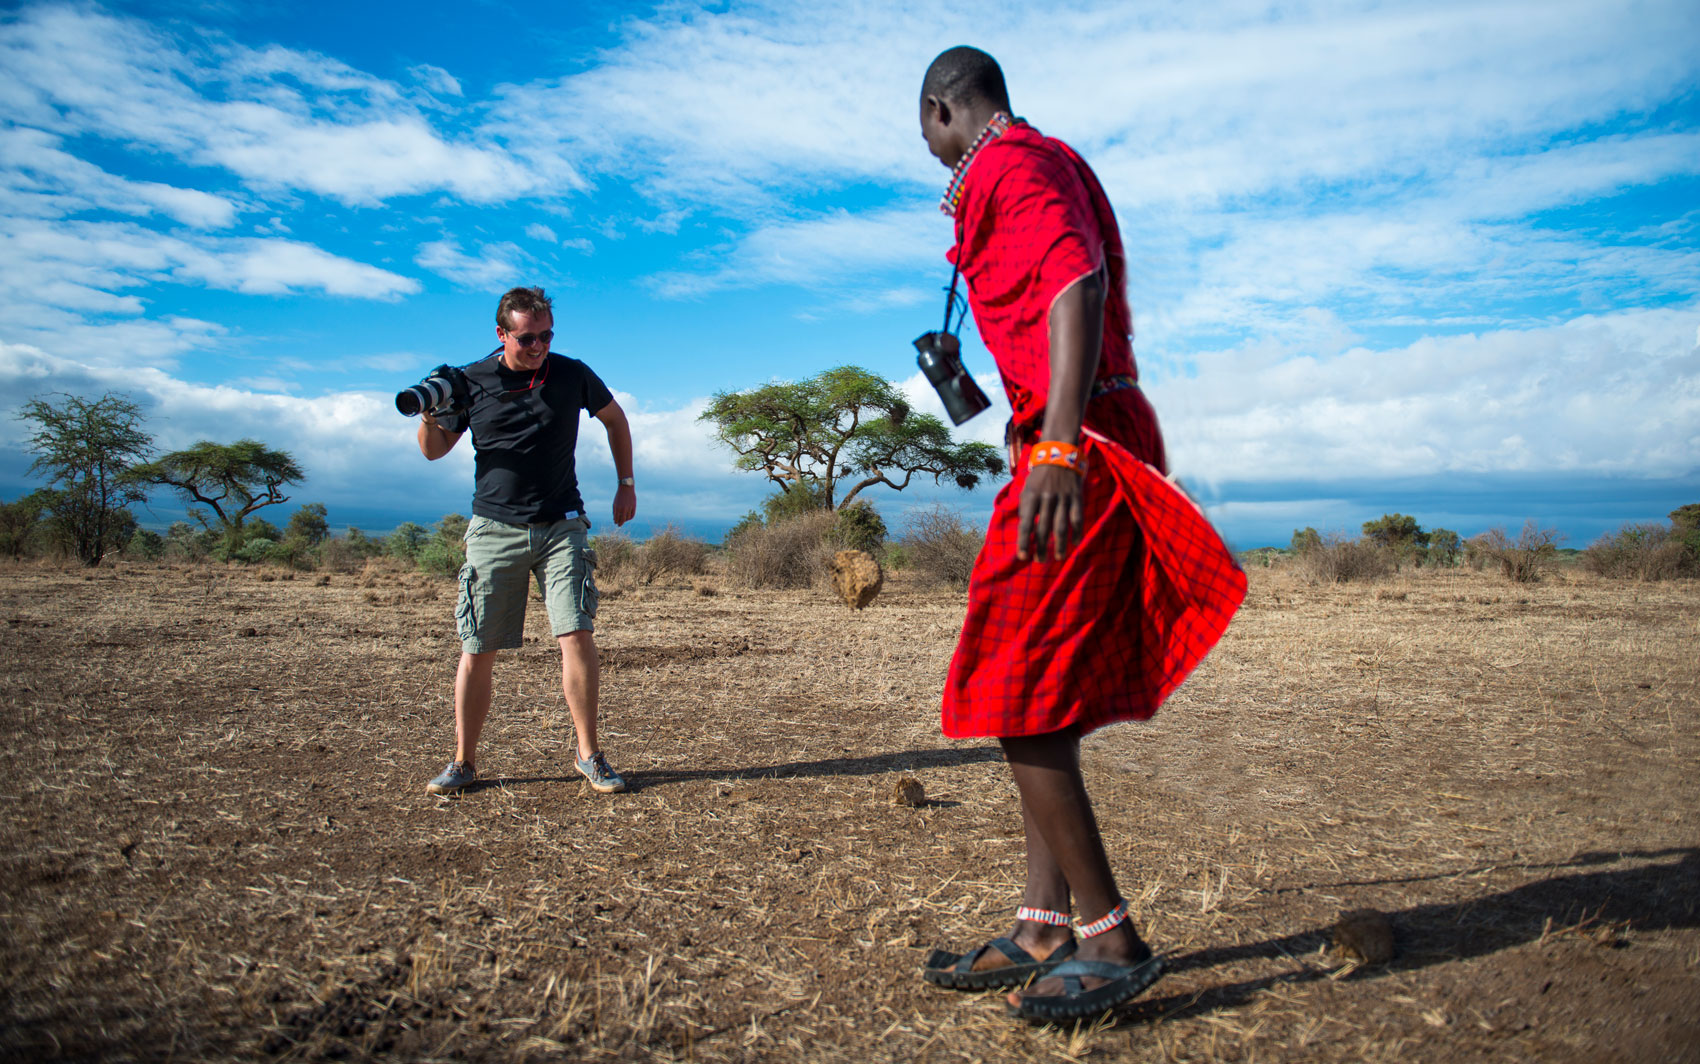 Timo Denys soccer with Maasai